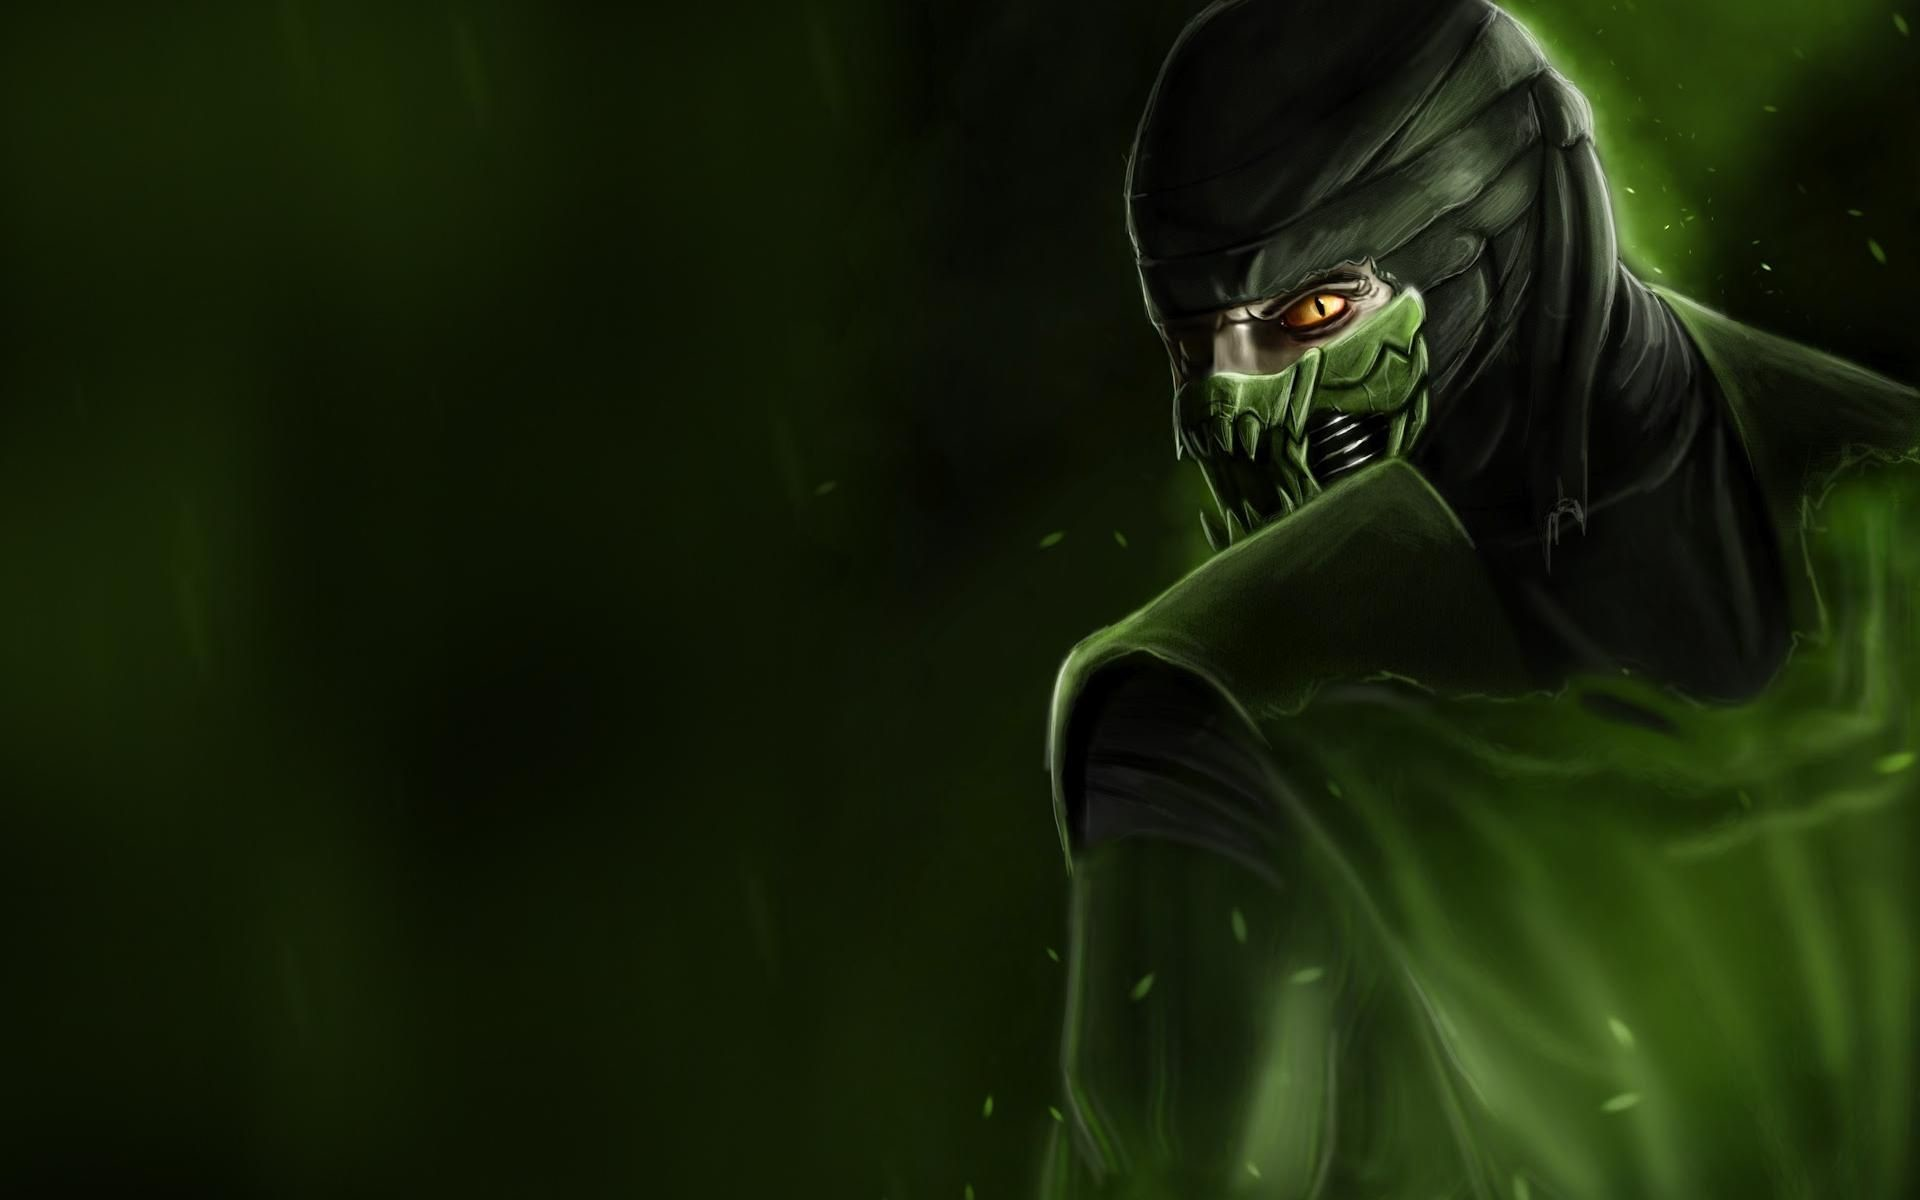 reptile mortal kombat wallpaper ·①